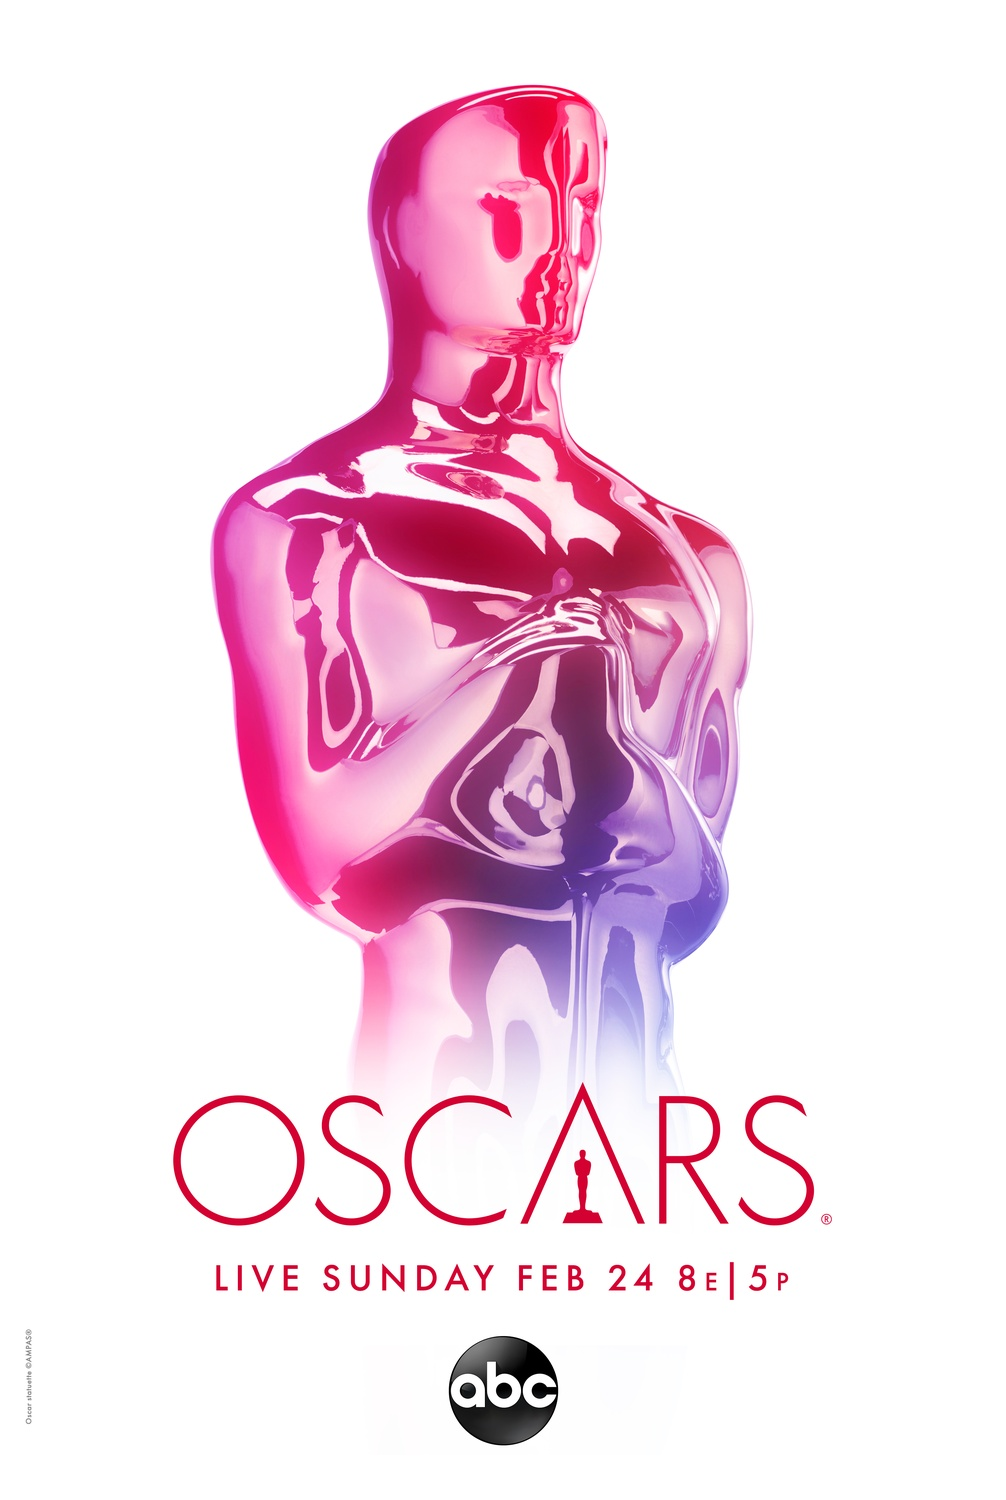 The nominations for the 2019 Academy Awards were announced Tuesday, January 22.